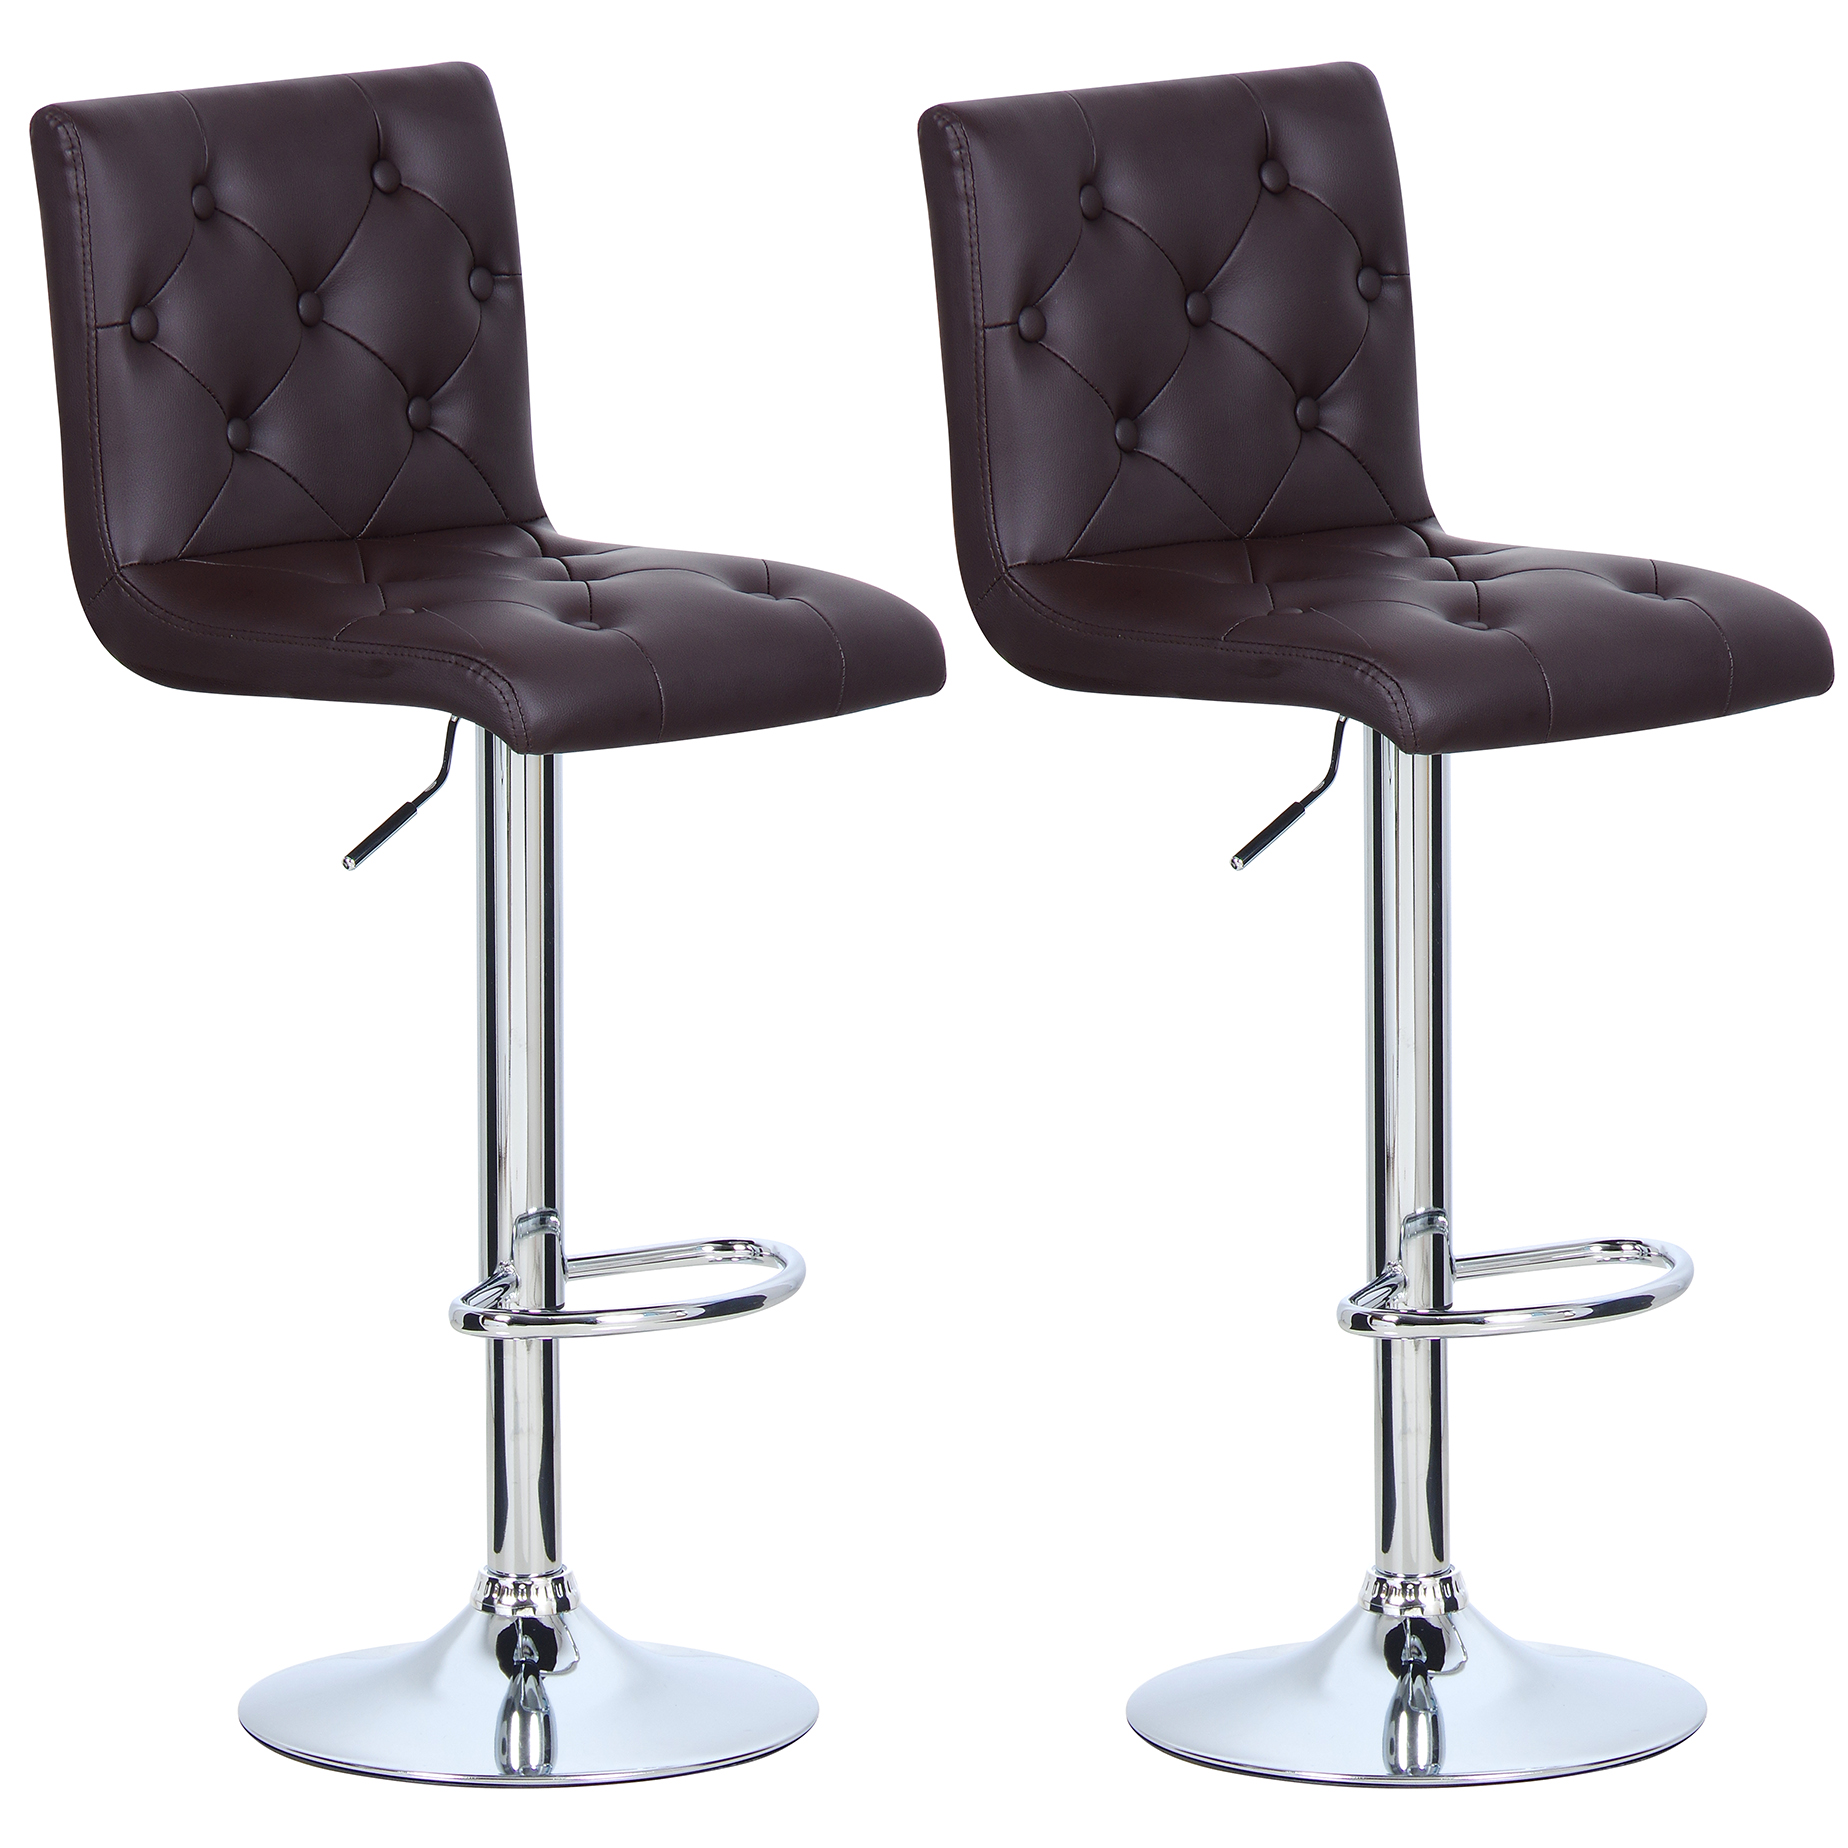 1 2 tabouret de bar en cuir synth tique chaise cuisine en plastique brun f014 ebay. Black Bedroom Furniture Sets. Home Design Ideas